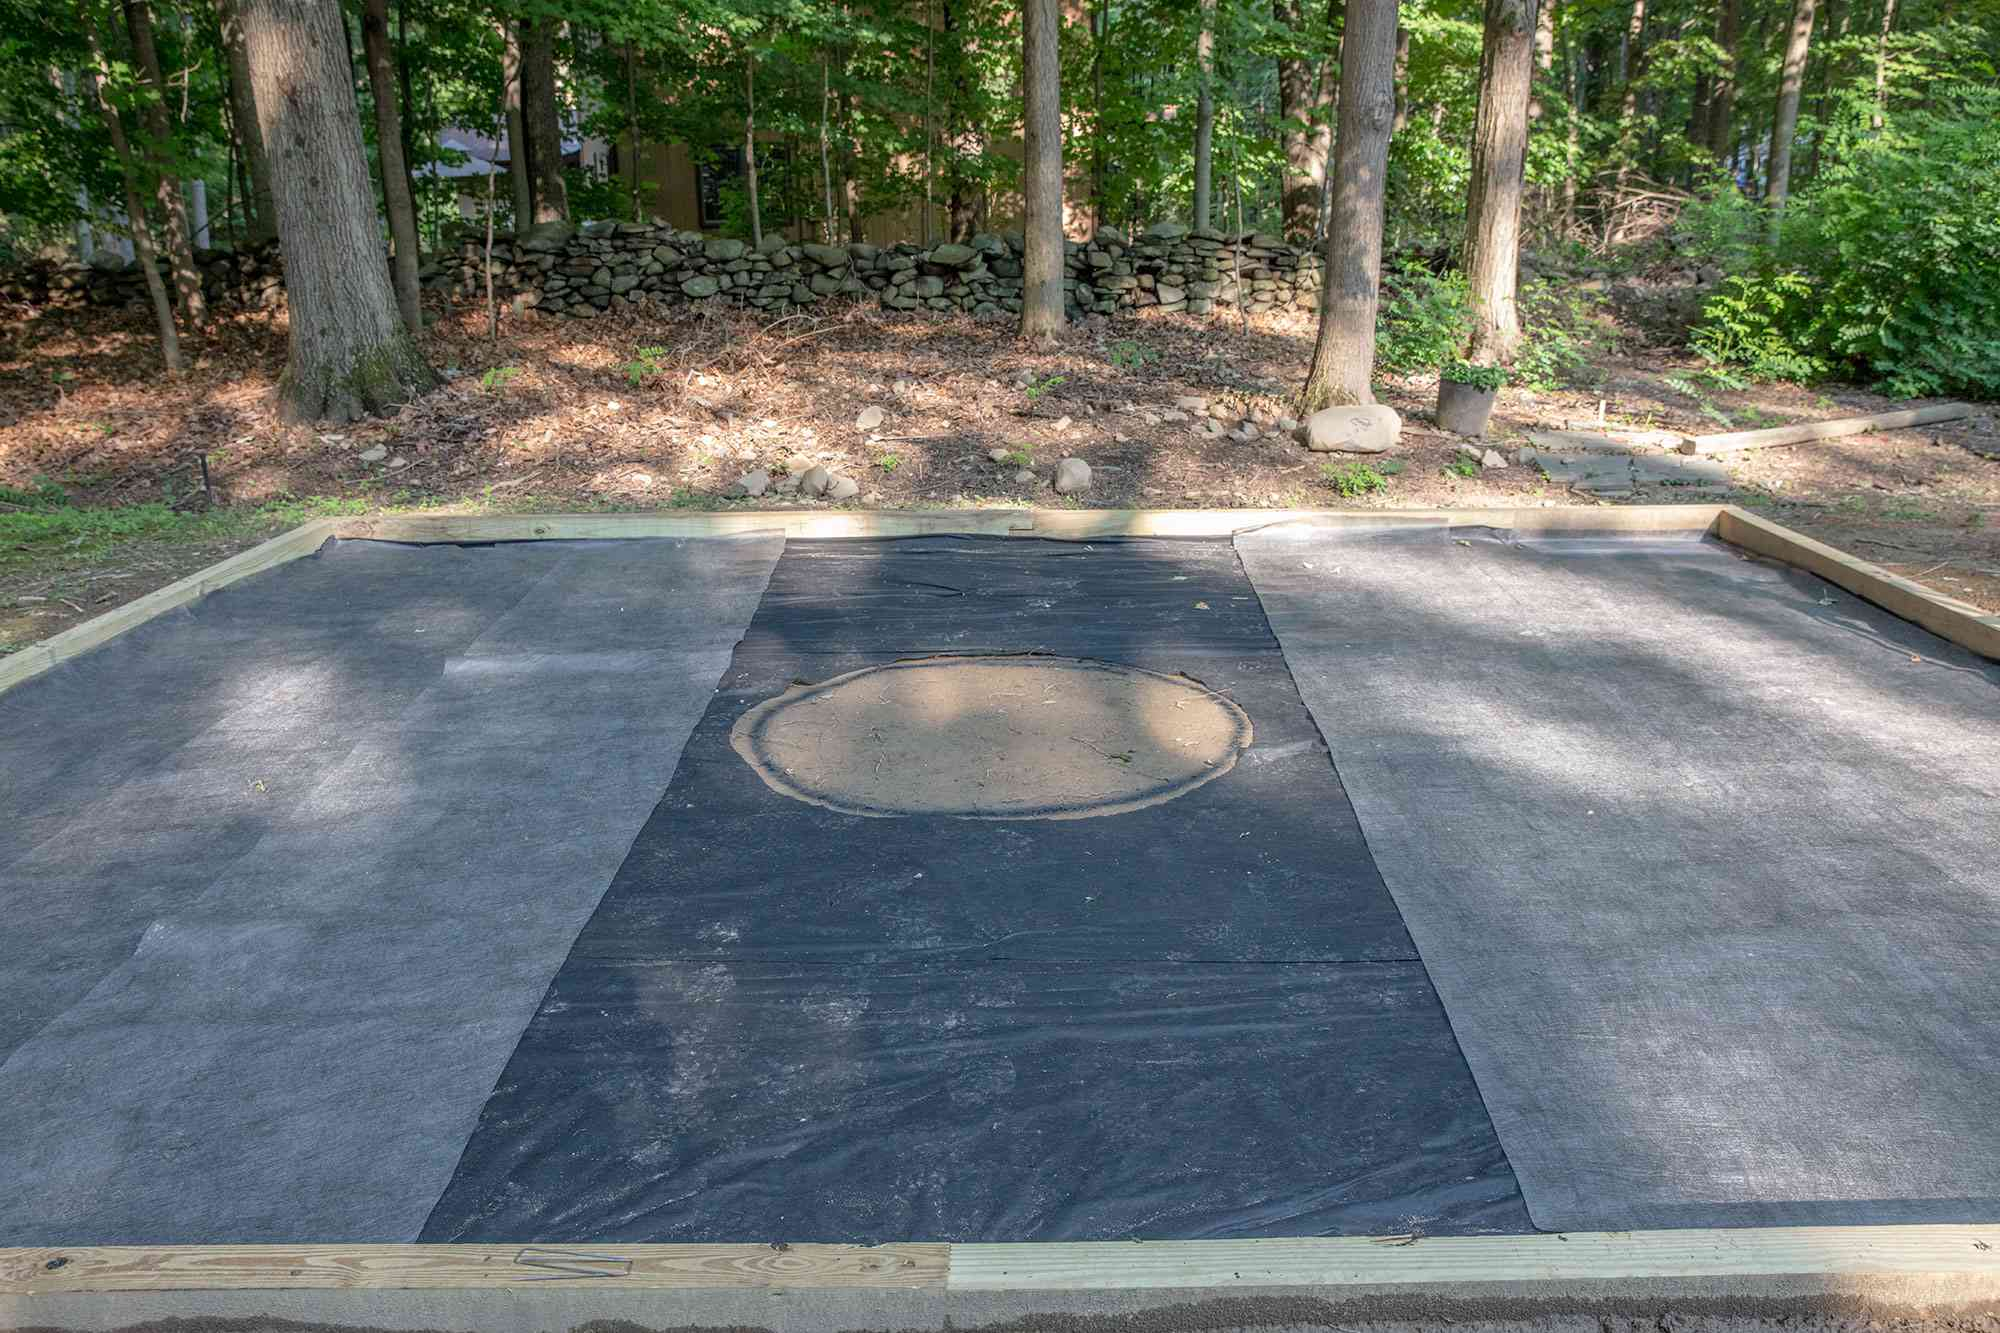 Fire pit location designated with landscape fabric and timbers